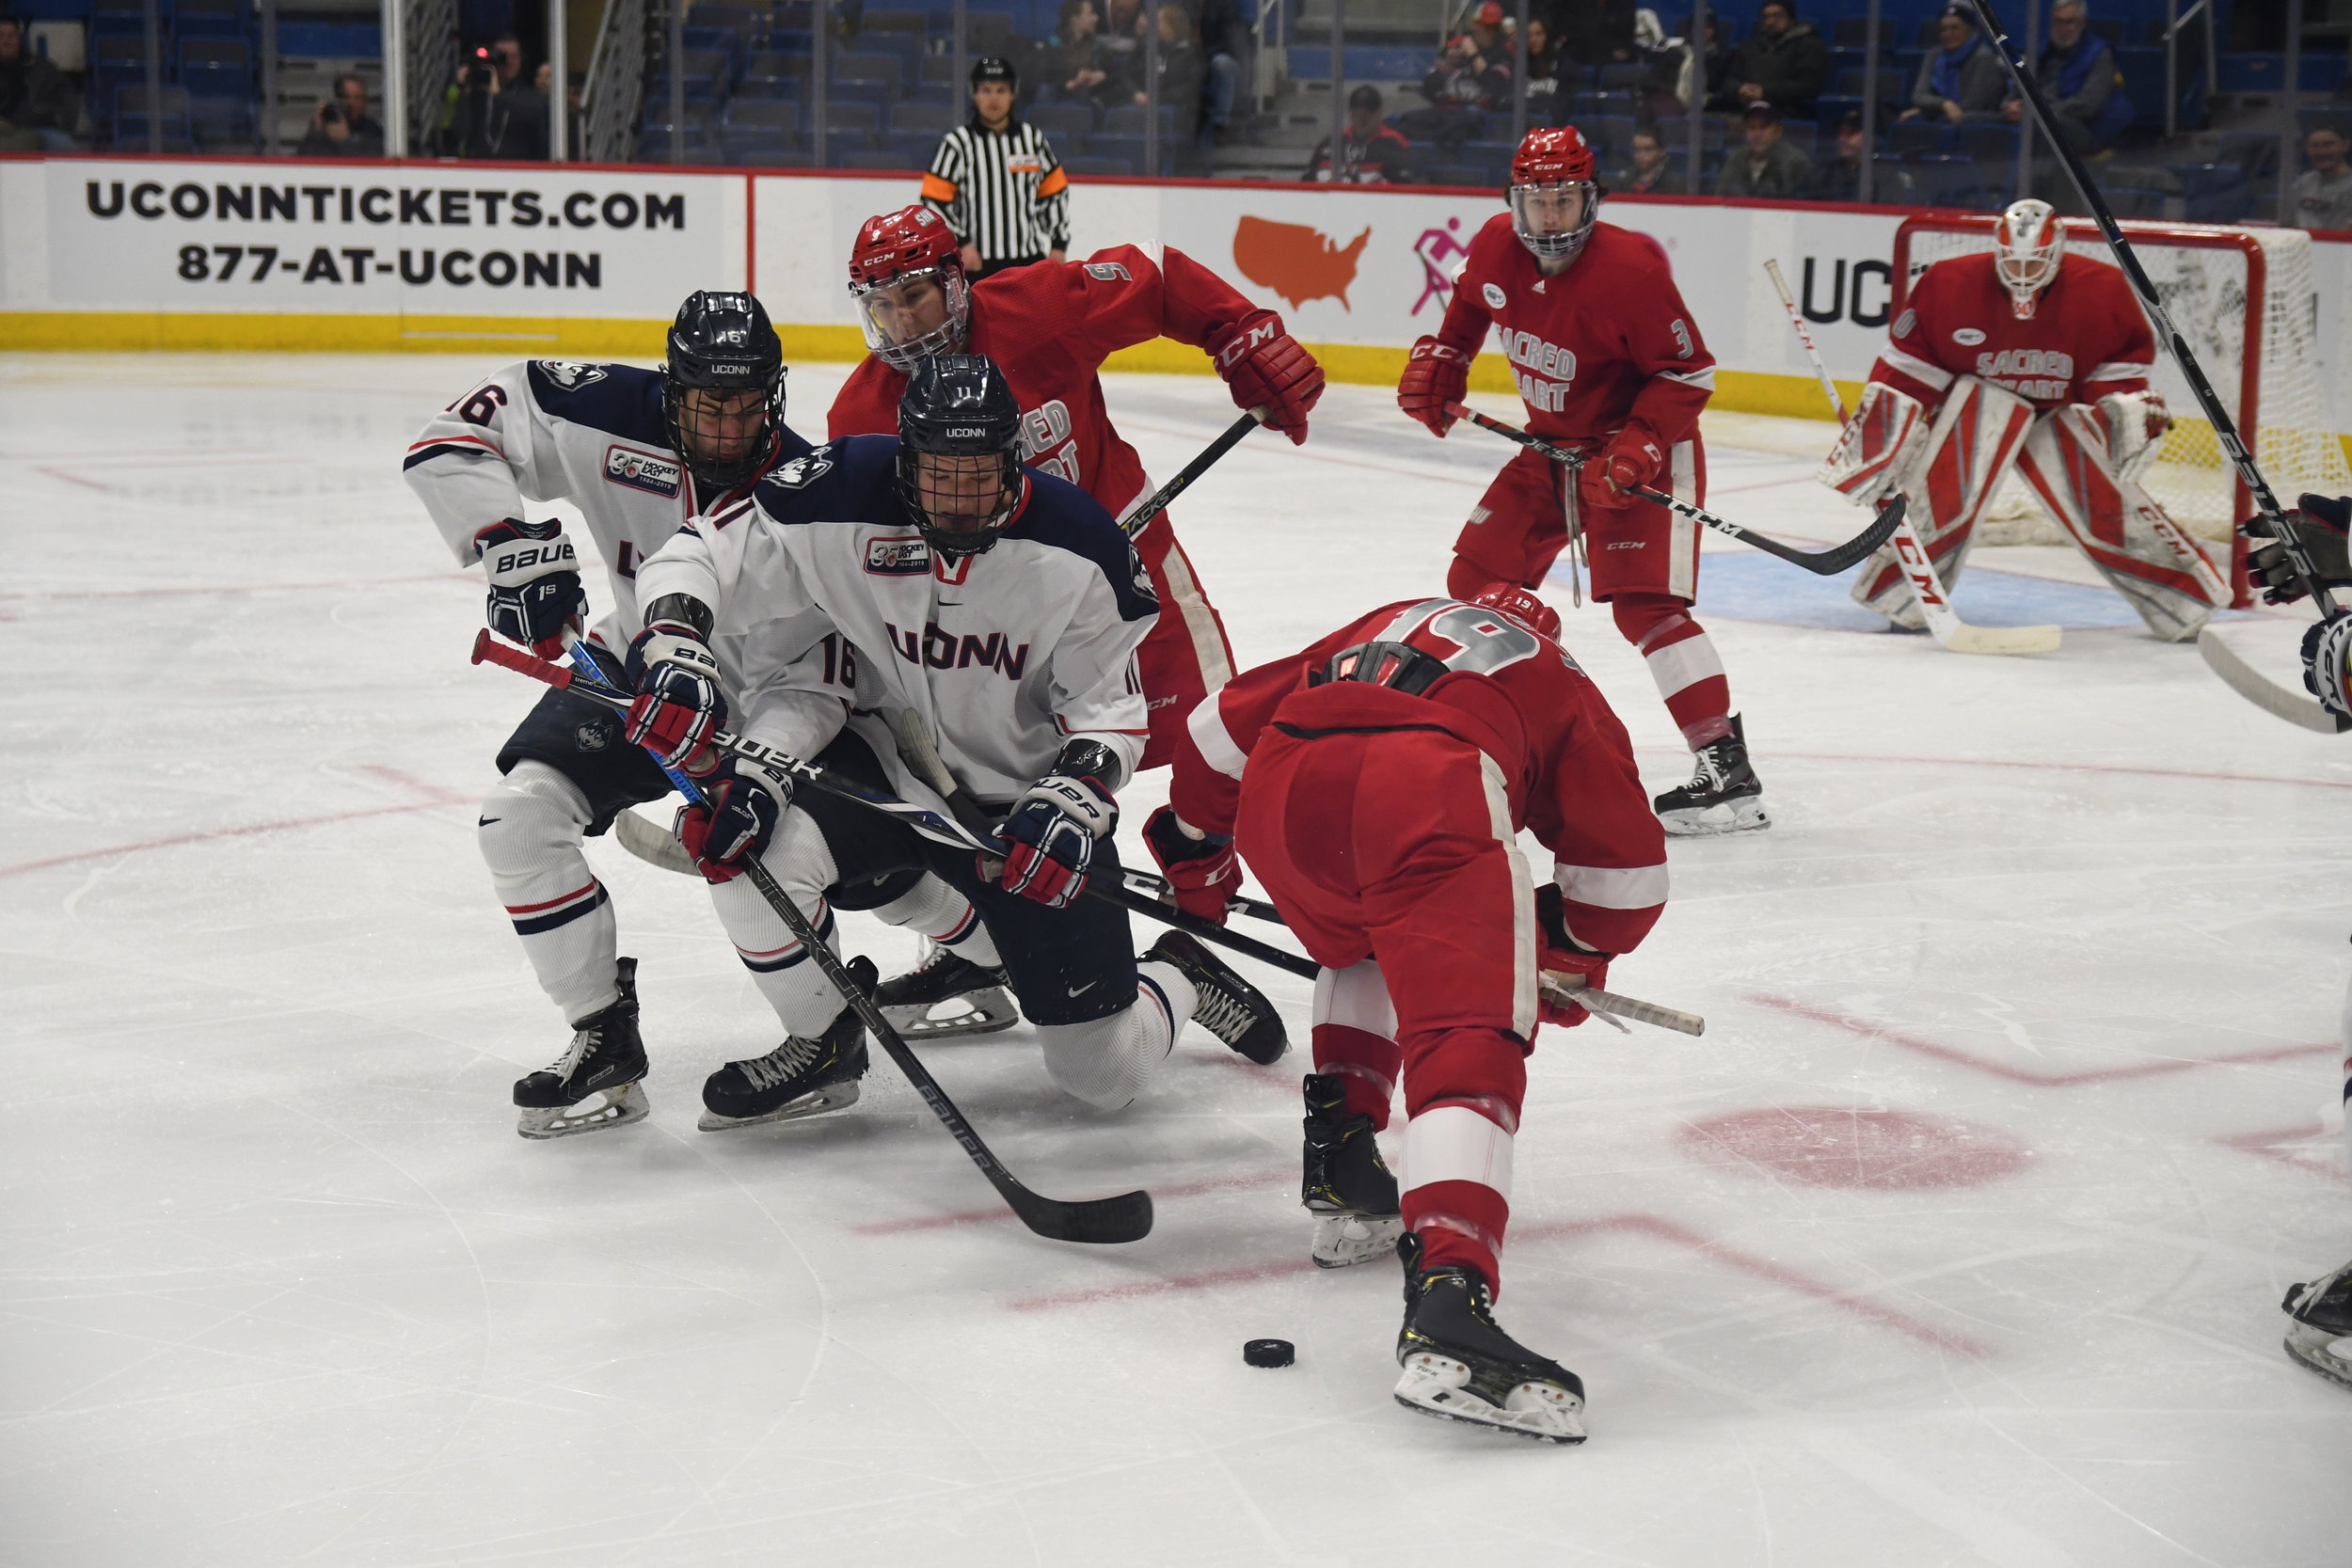 Men's hockey lost 1-2 against Sacred Heart University in the XL Center Tuesday night. UConn's goal was scored by Karl El-Mir in the third period. Their next game is against Boston College Friday at 7:05 in the XL Center. (Photo by Nick/The Daily Campus)